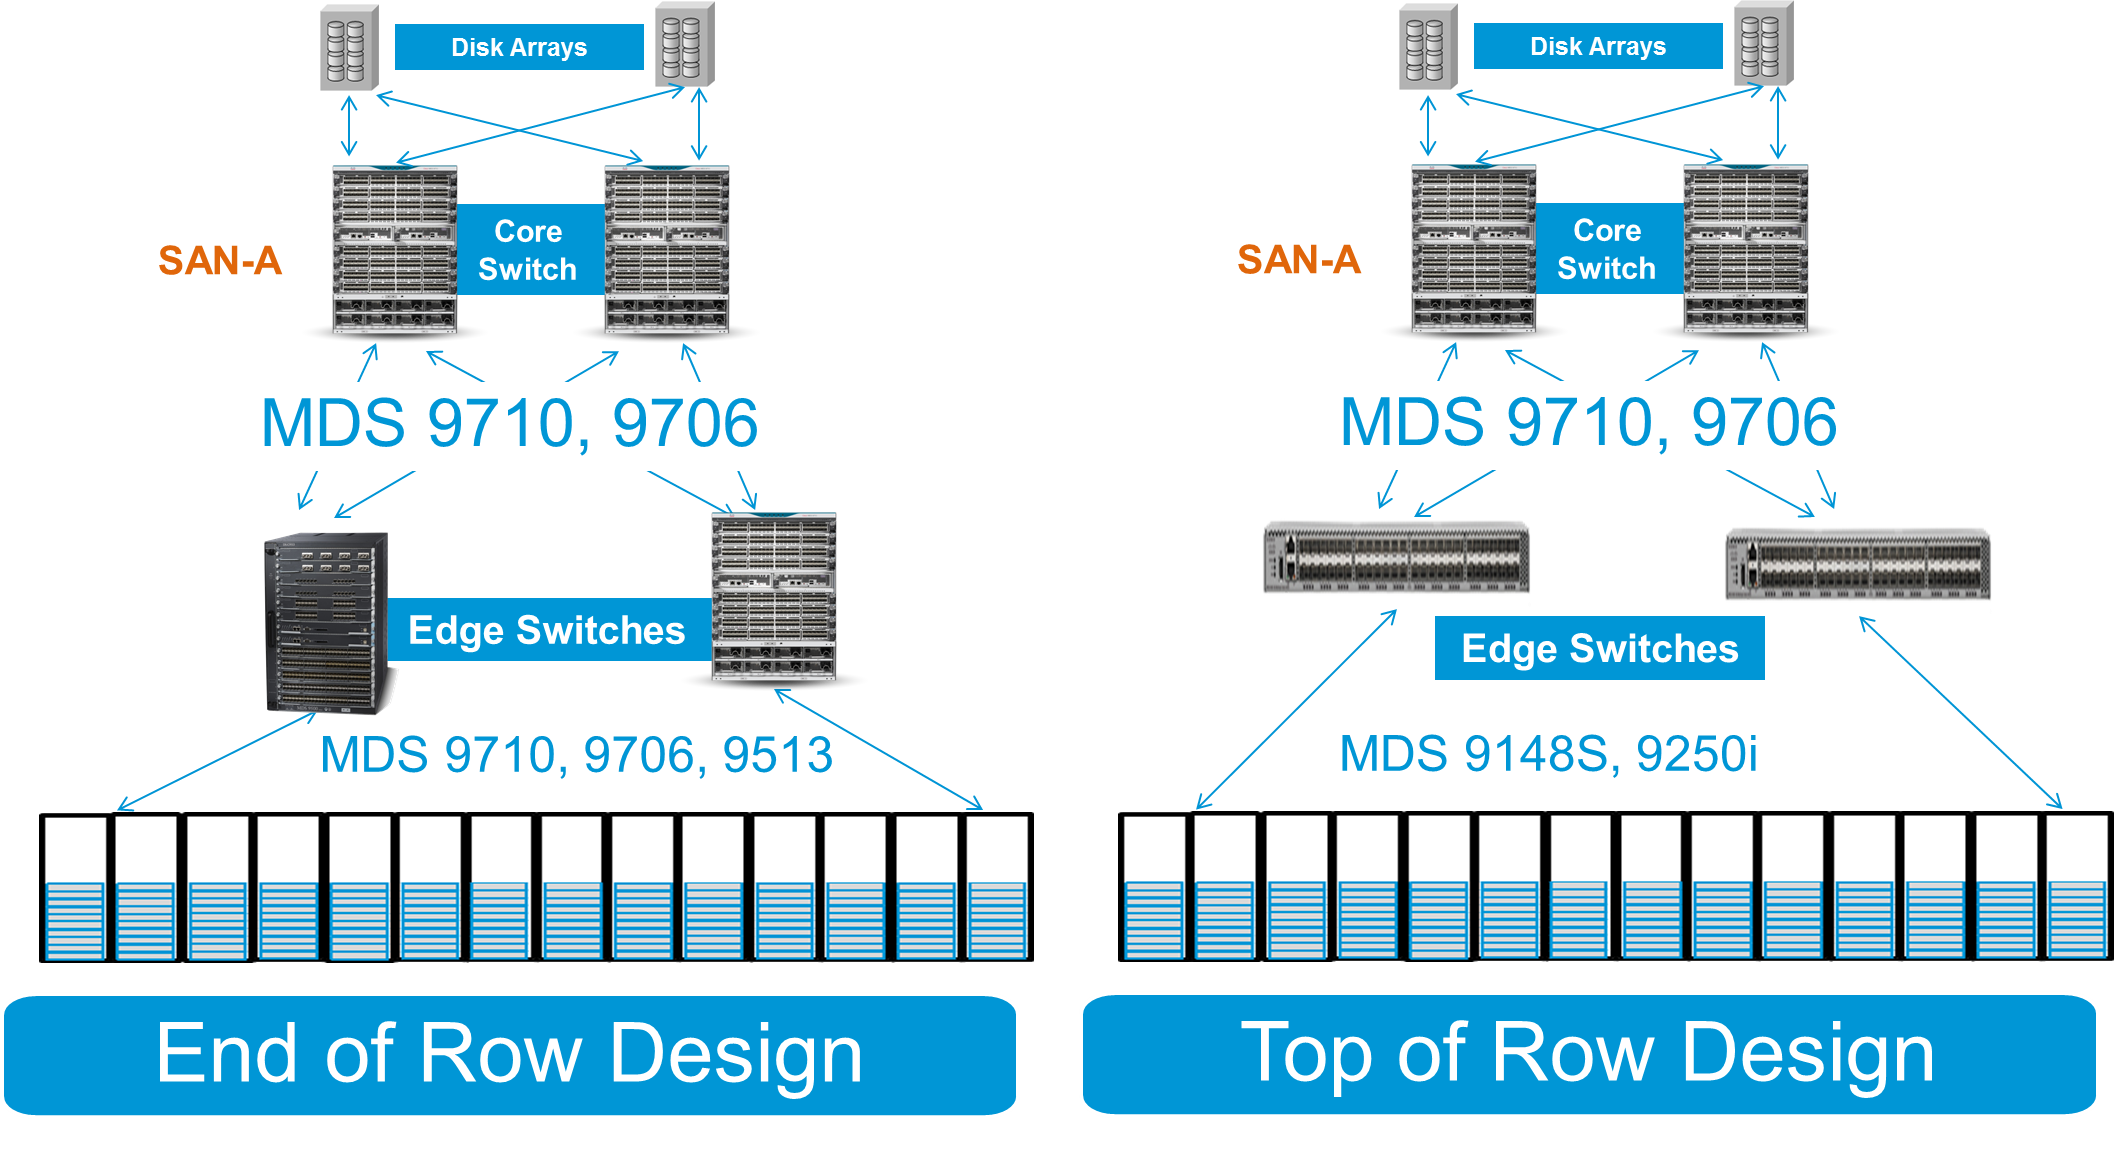 Examples of Edge Core Designs with MDS ToR and EoR